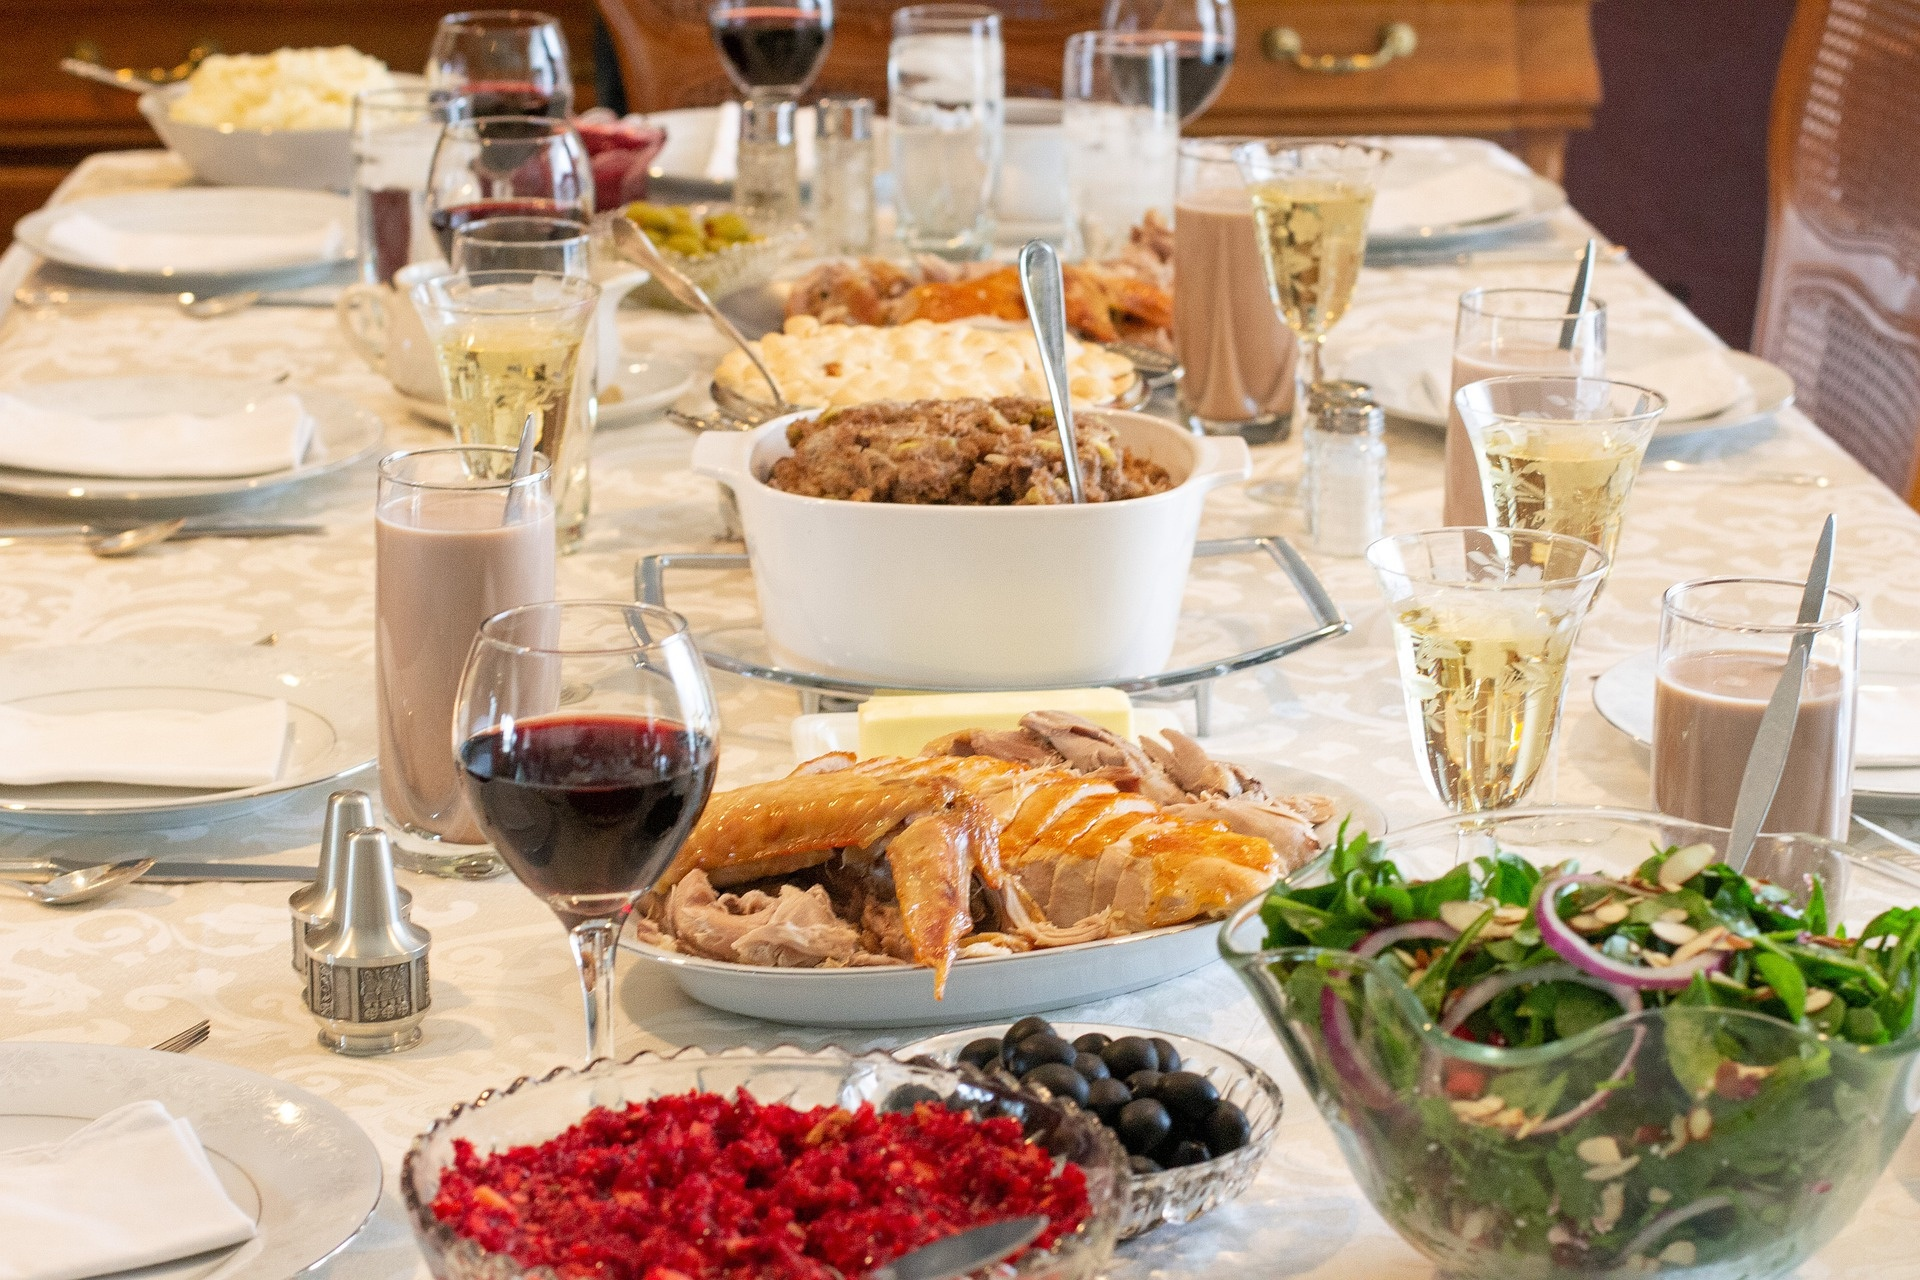 Best Wines To Pair With Turkey